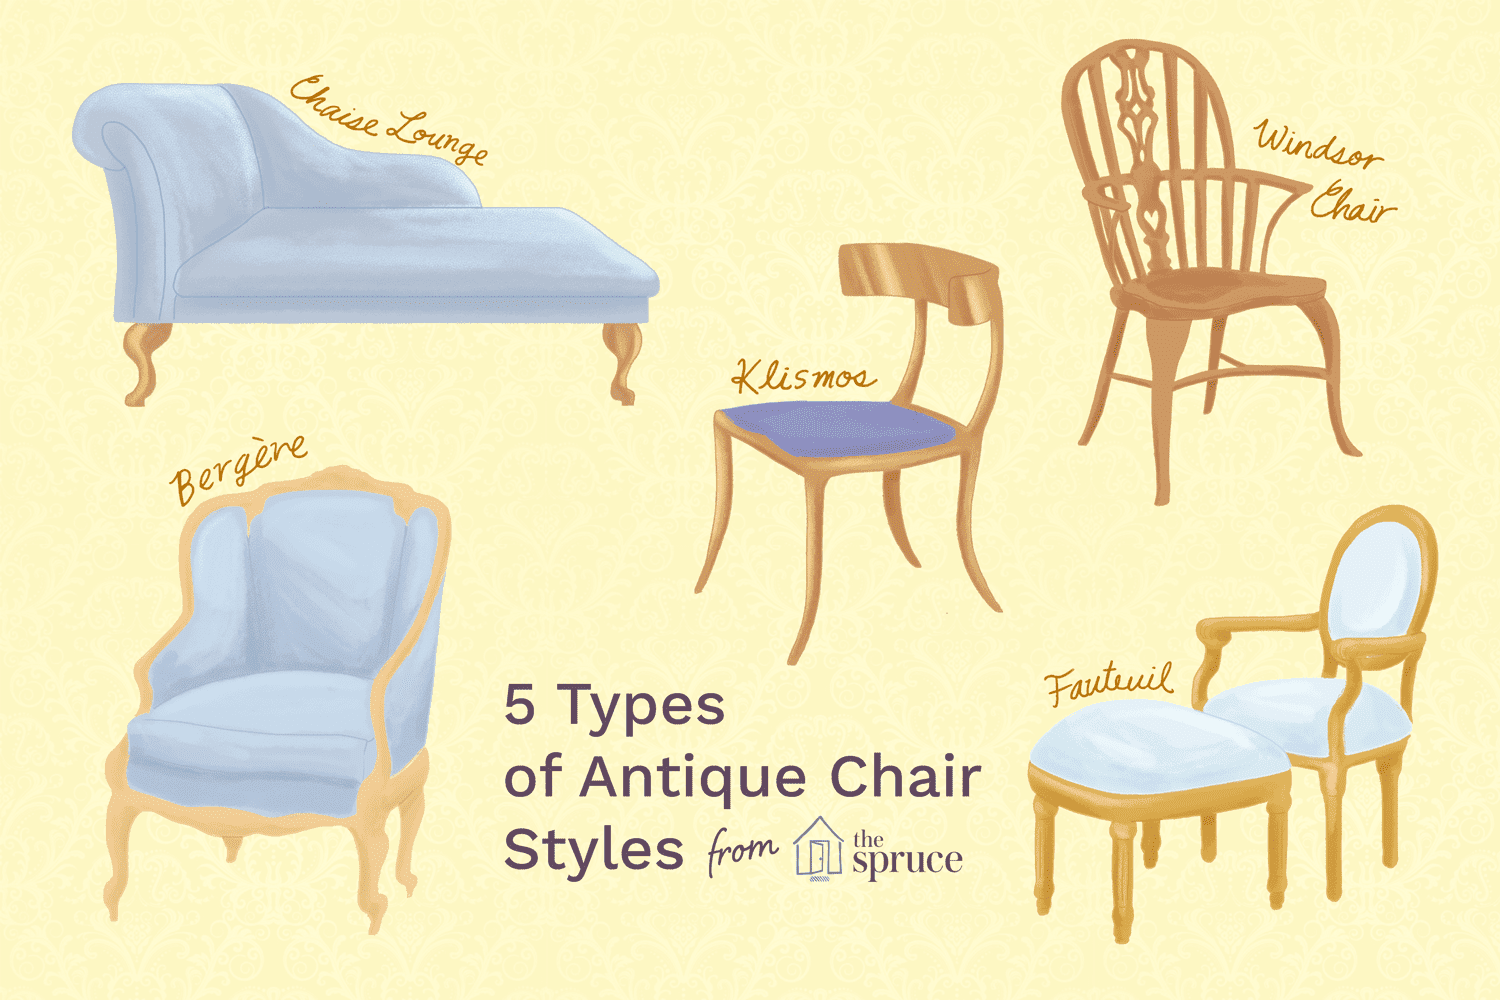 Here Is A List Of Many Types Of Antique Chair Styles Developed In Europe And The United States Over The In 2020 Antique Chair Styles Antique Rocking Chairs Chair Style